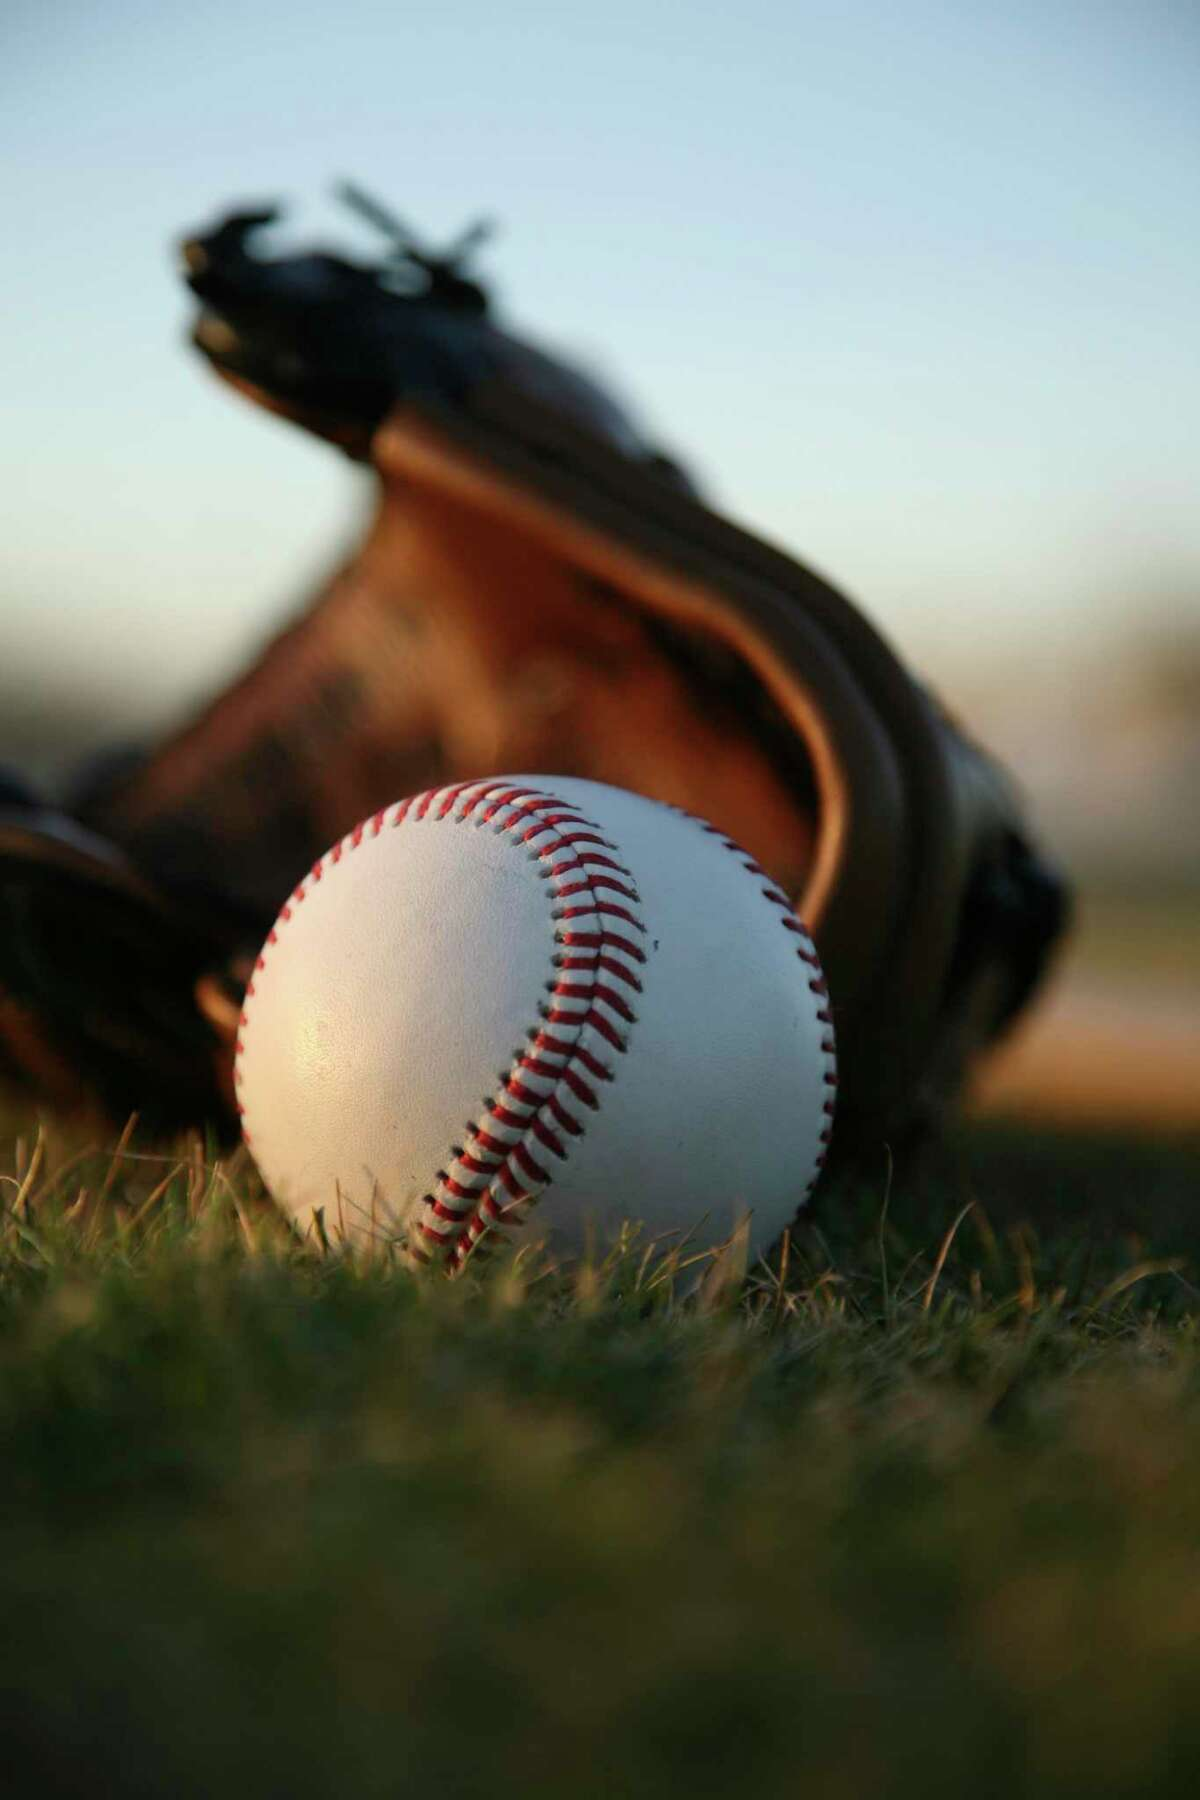 The Fairchester Athletic Association will attempt to hold as complete a regular season as possible this spring beginning in April.